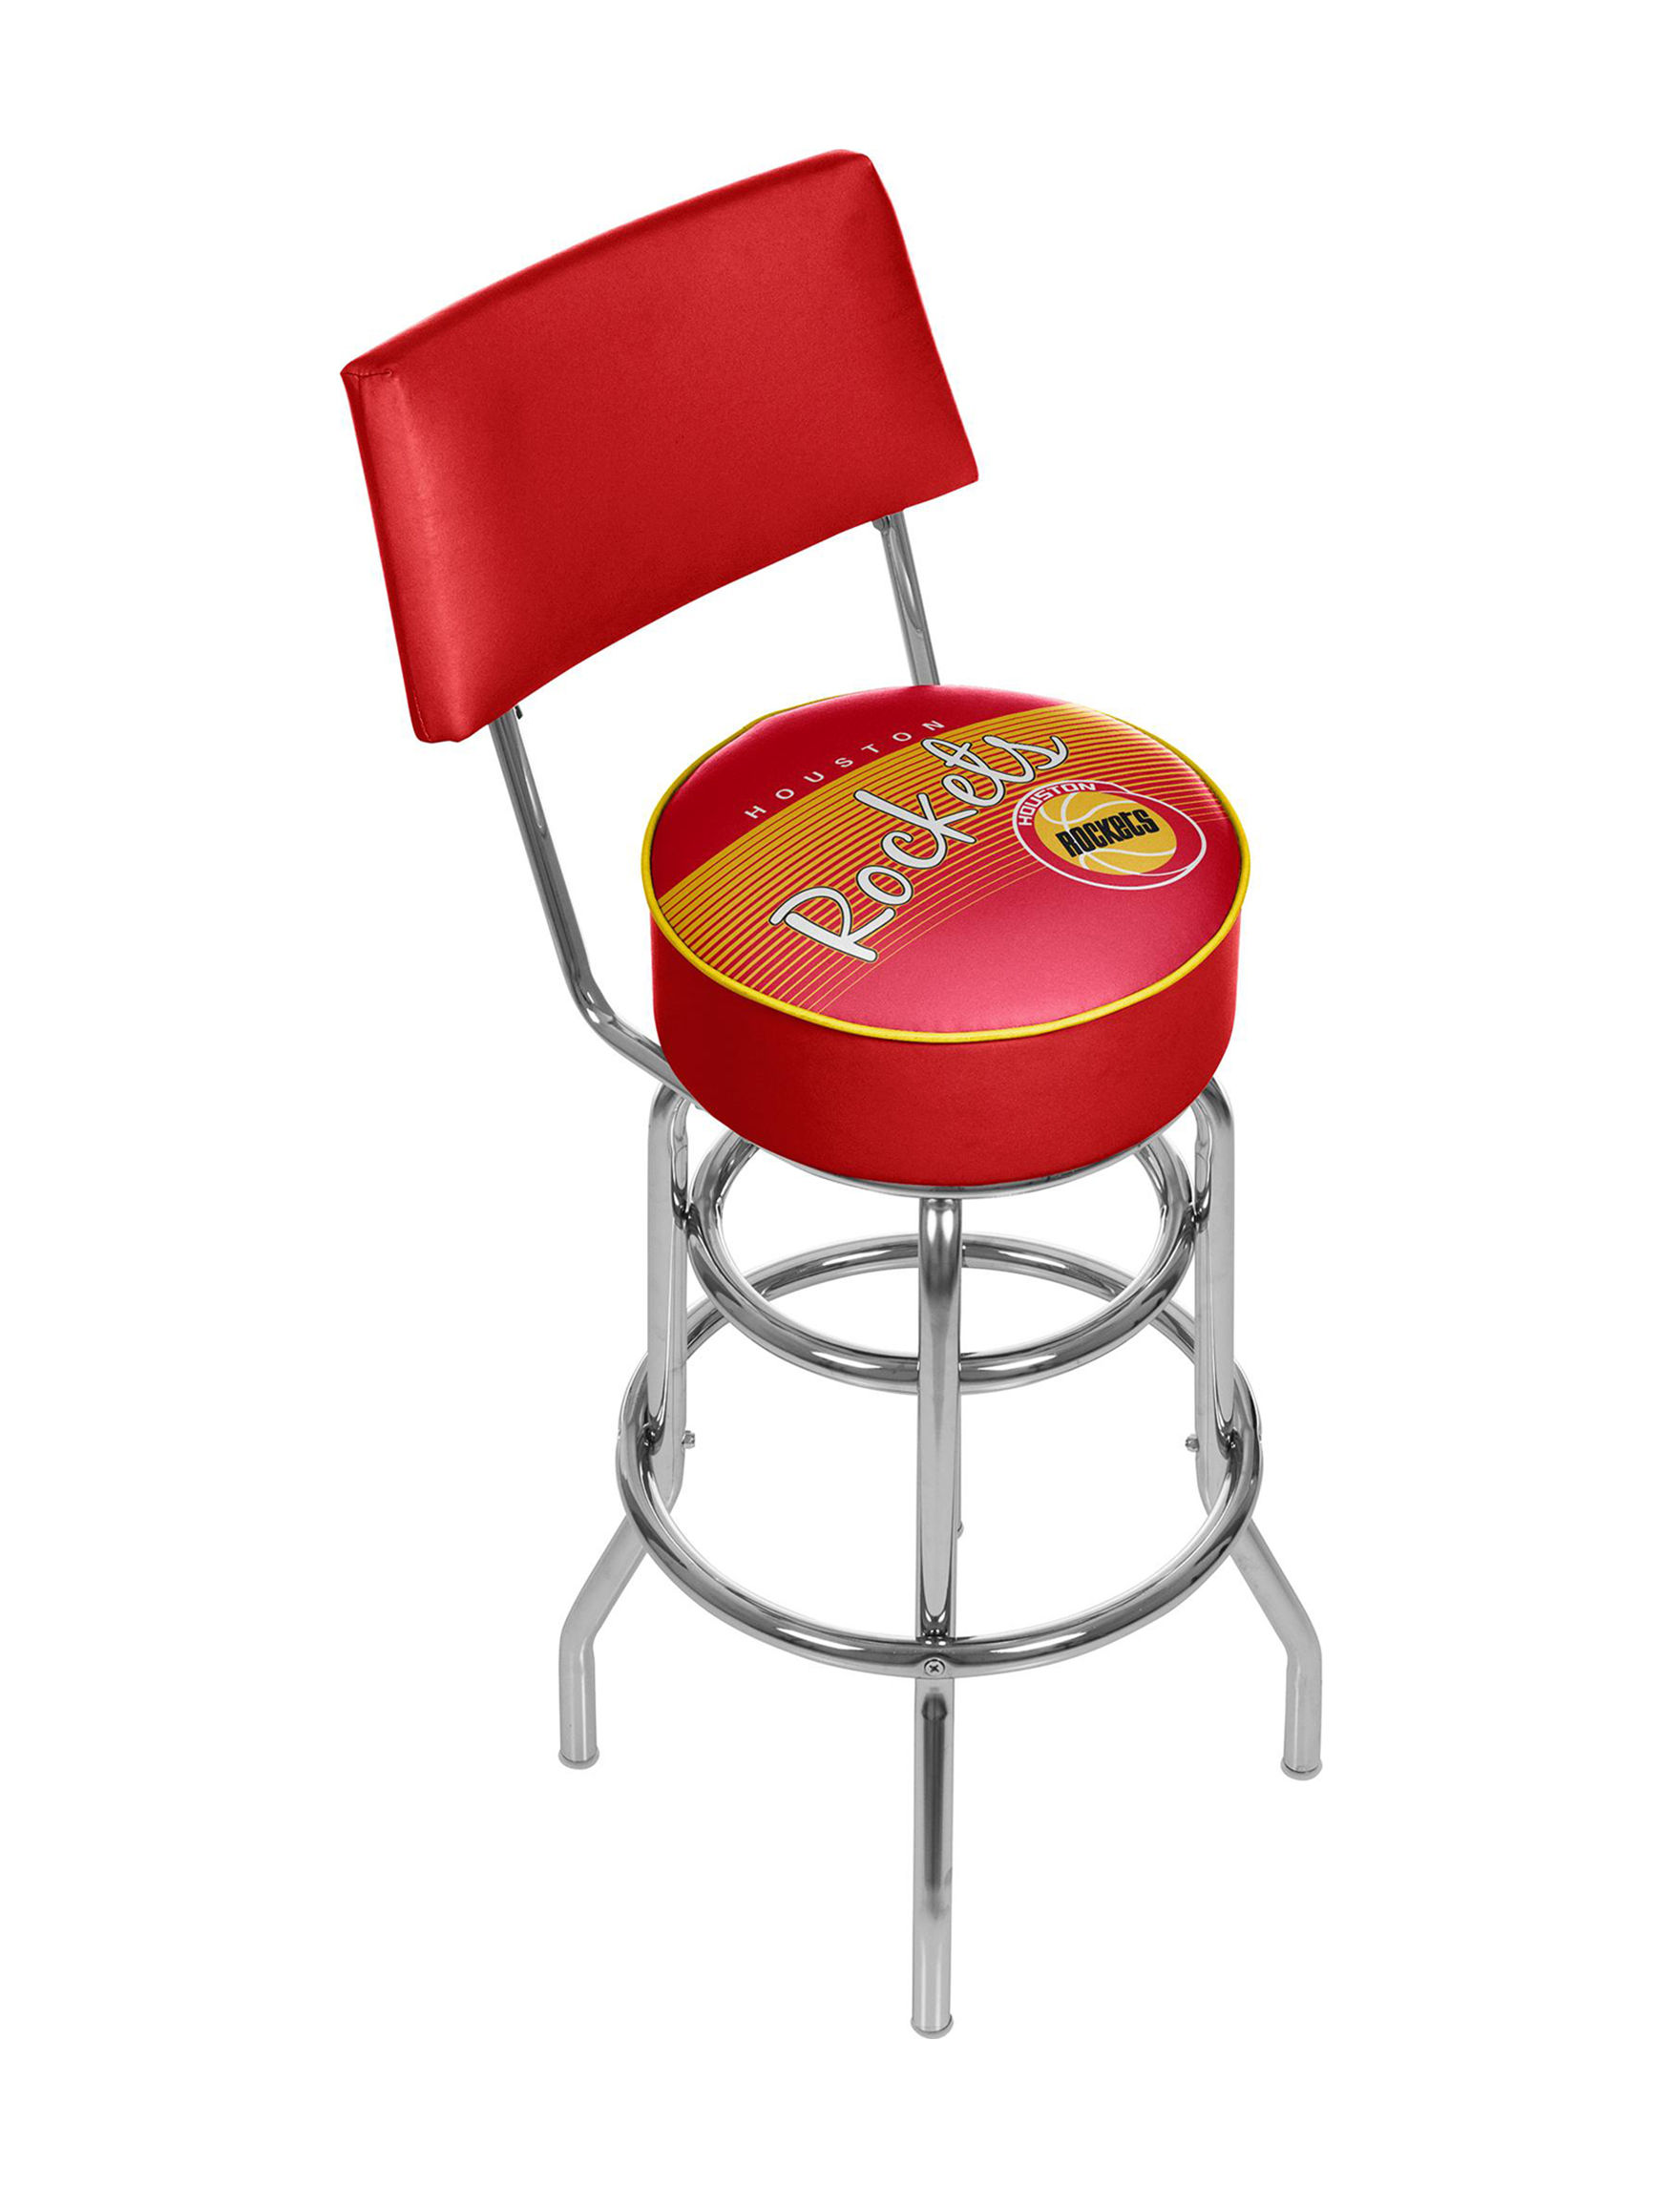 Trademark Global Red / Yellow Bar & Kitchen Stools Kitchen & Dining Furniture